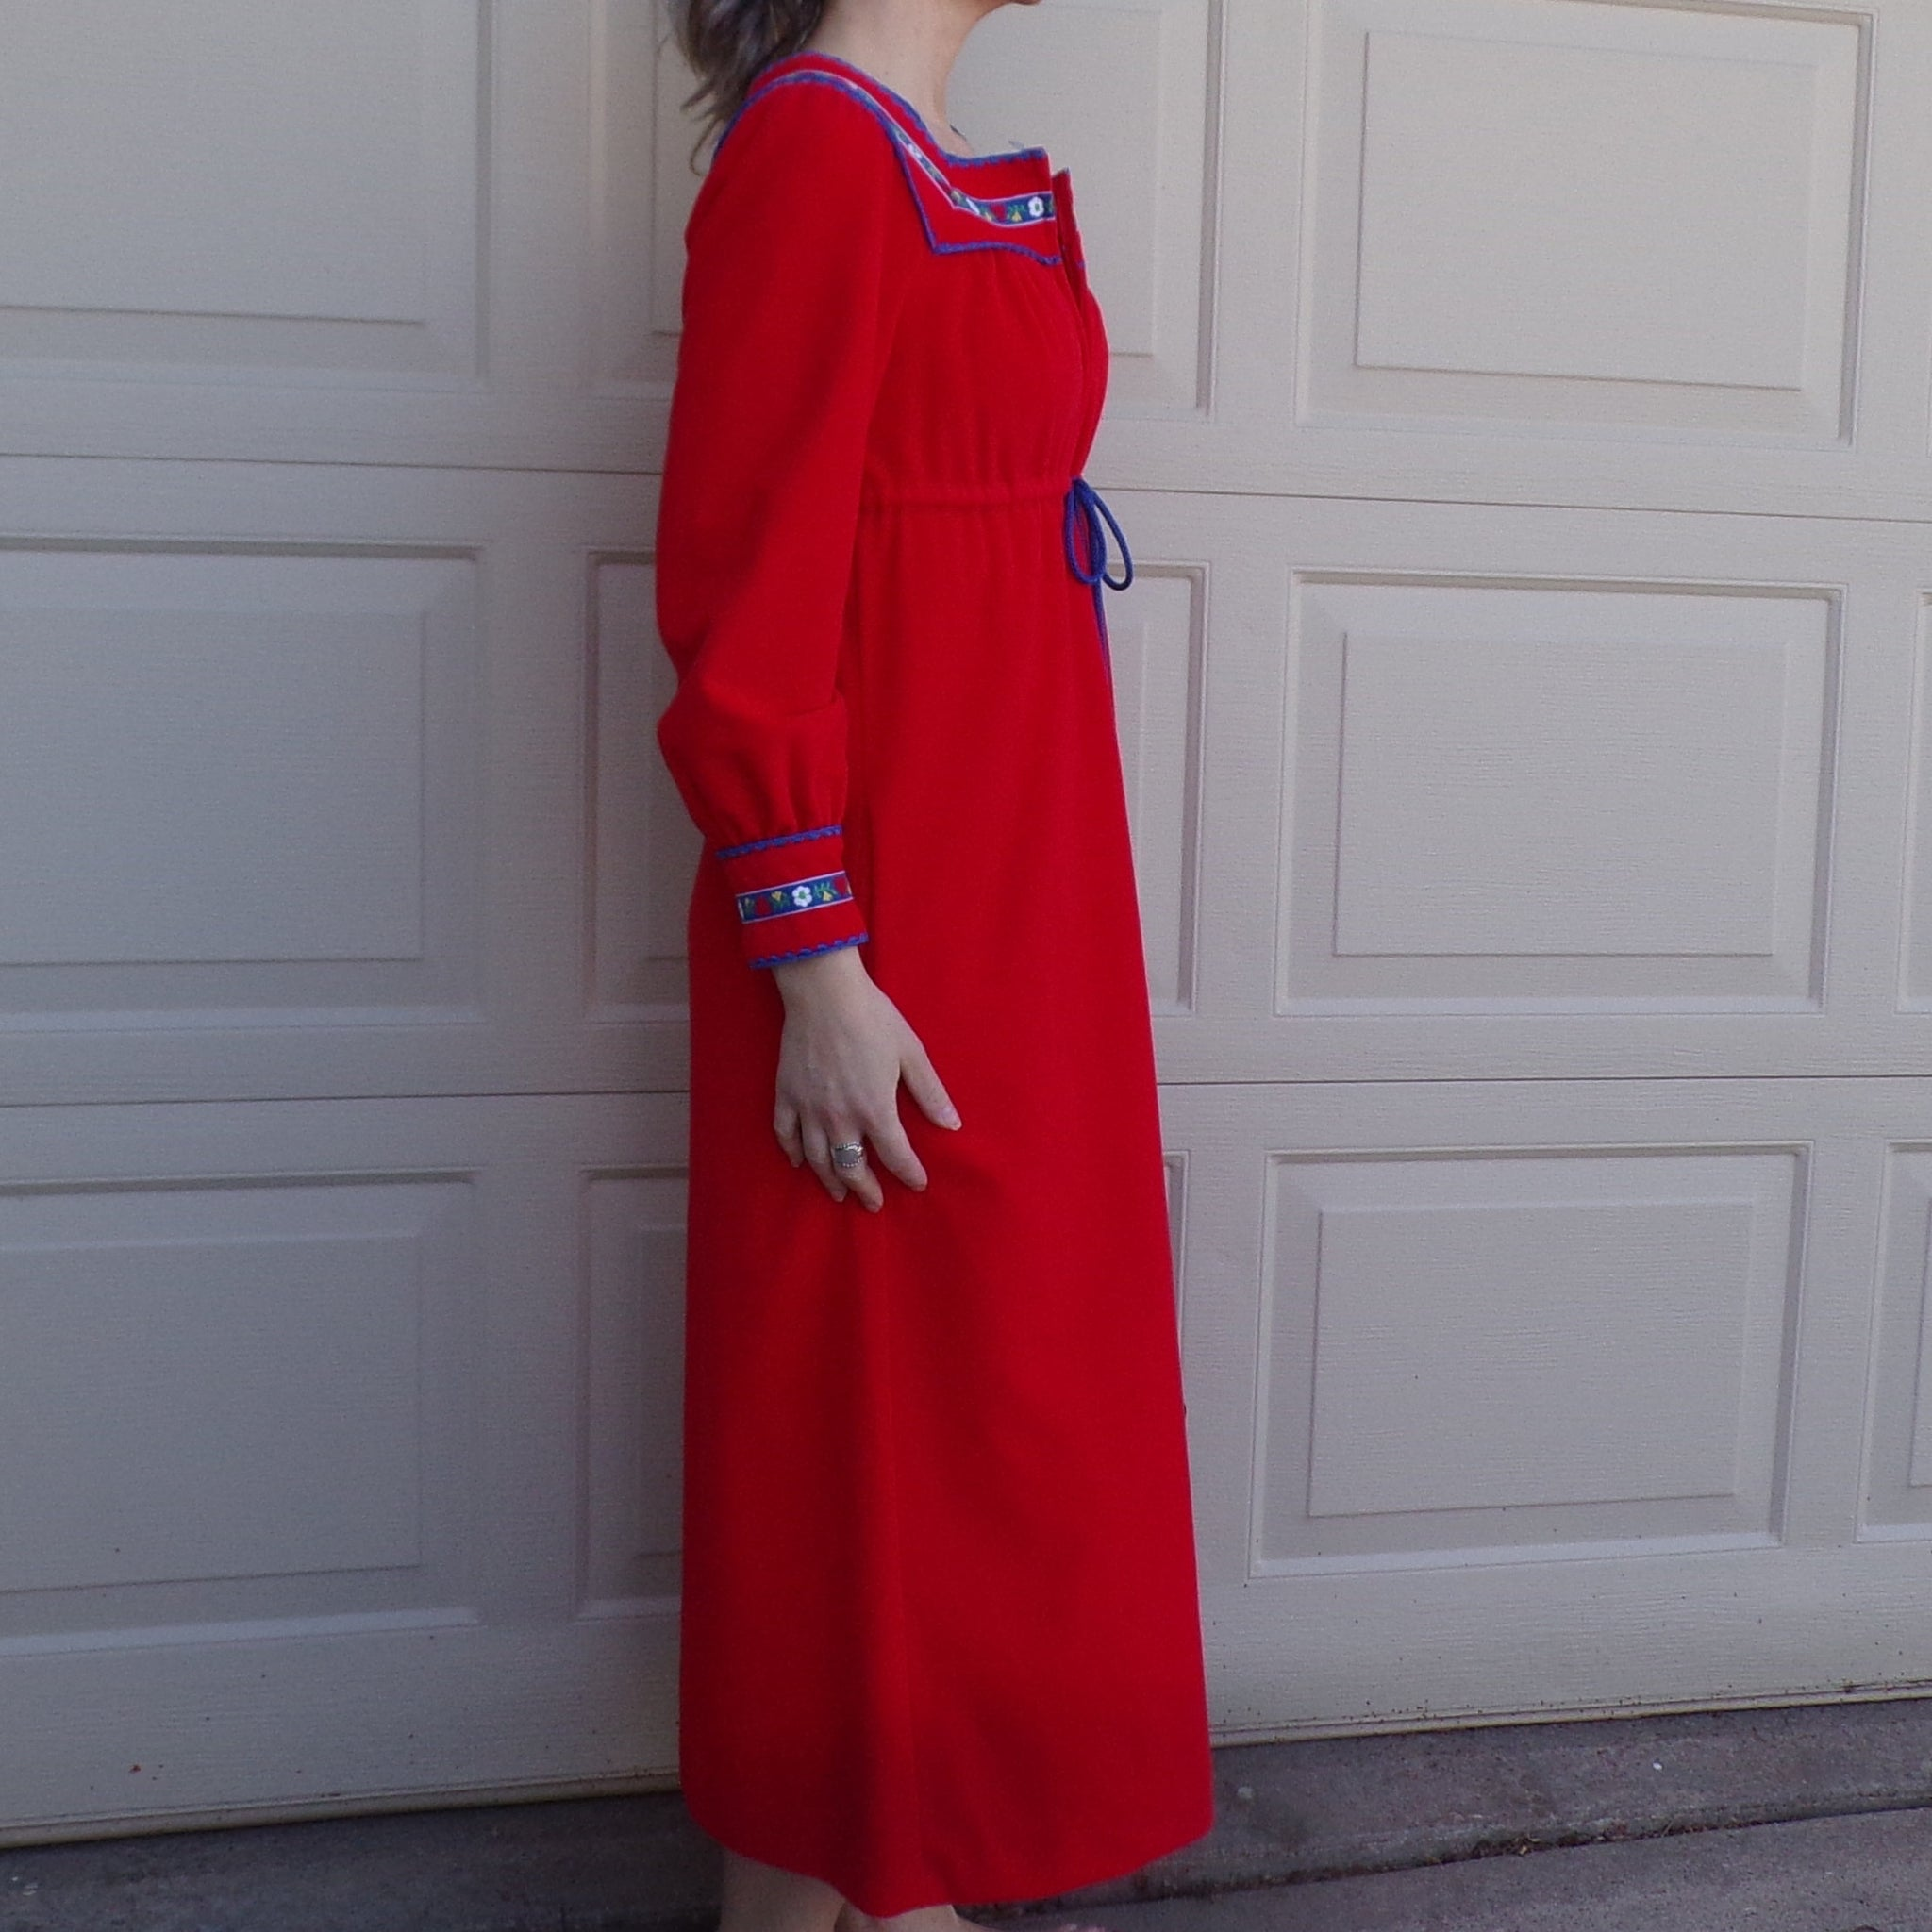 RED VASSARETTE LOUNGE nightgown and robe set 1970's 70's S petite xs